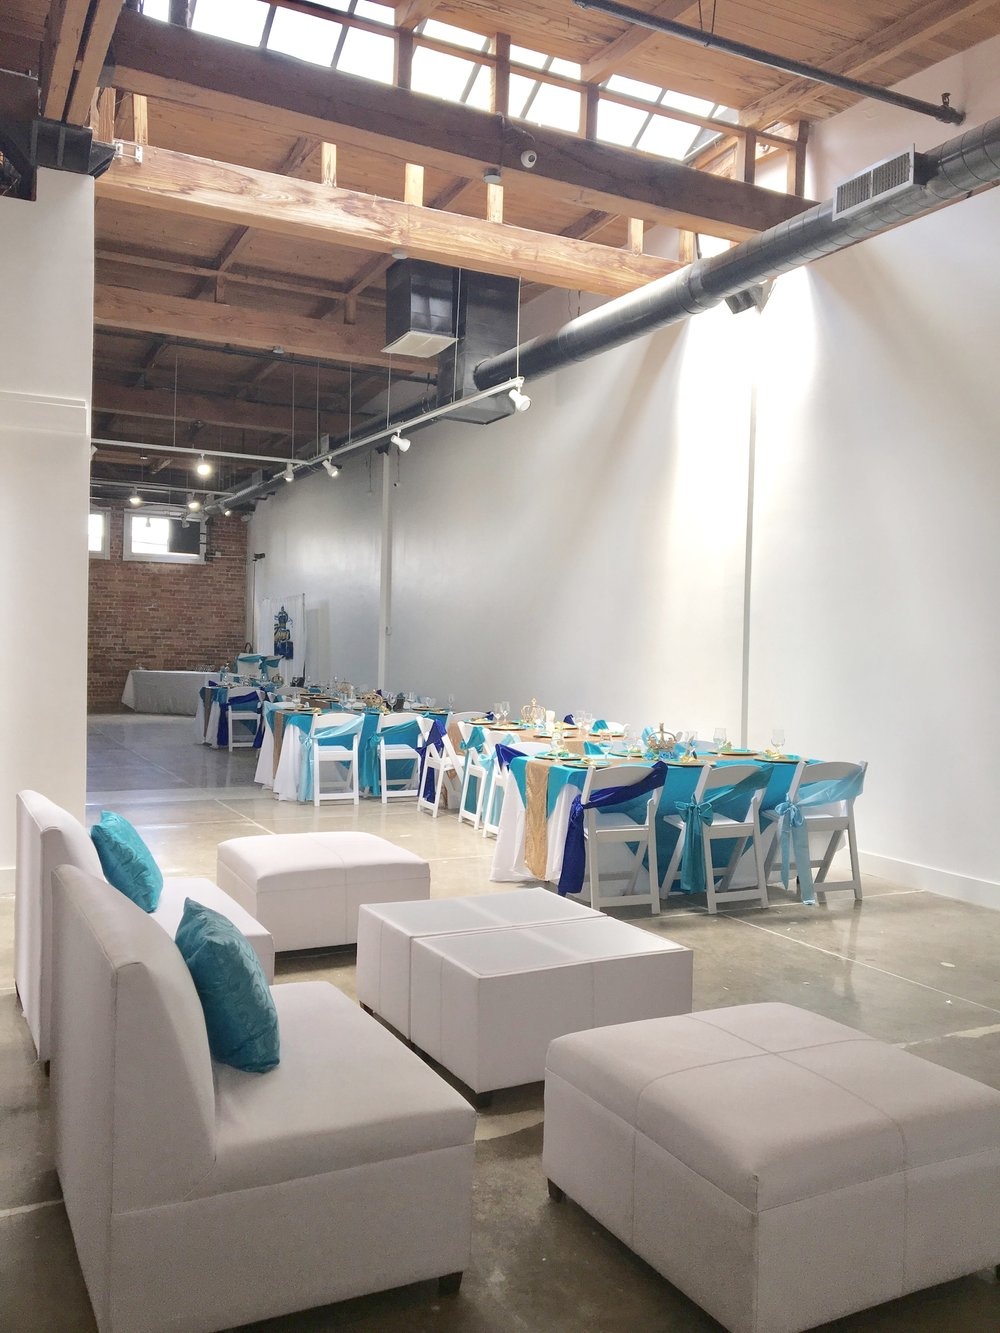 Our open floor plan is the perfect space for your gender reveal party or baby shower.